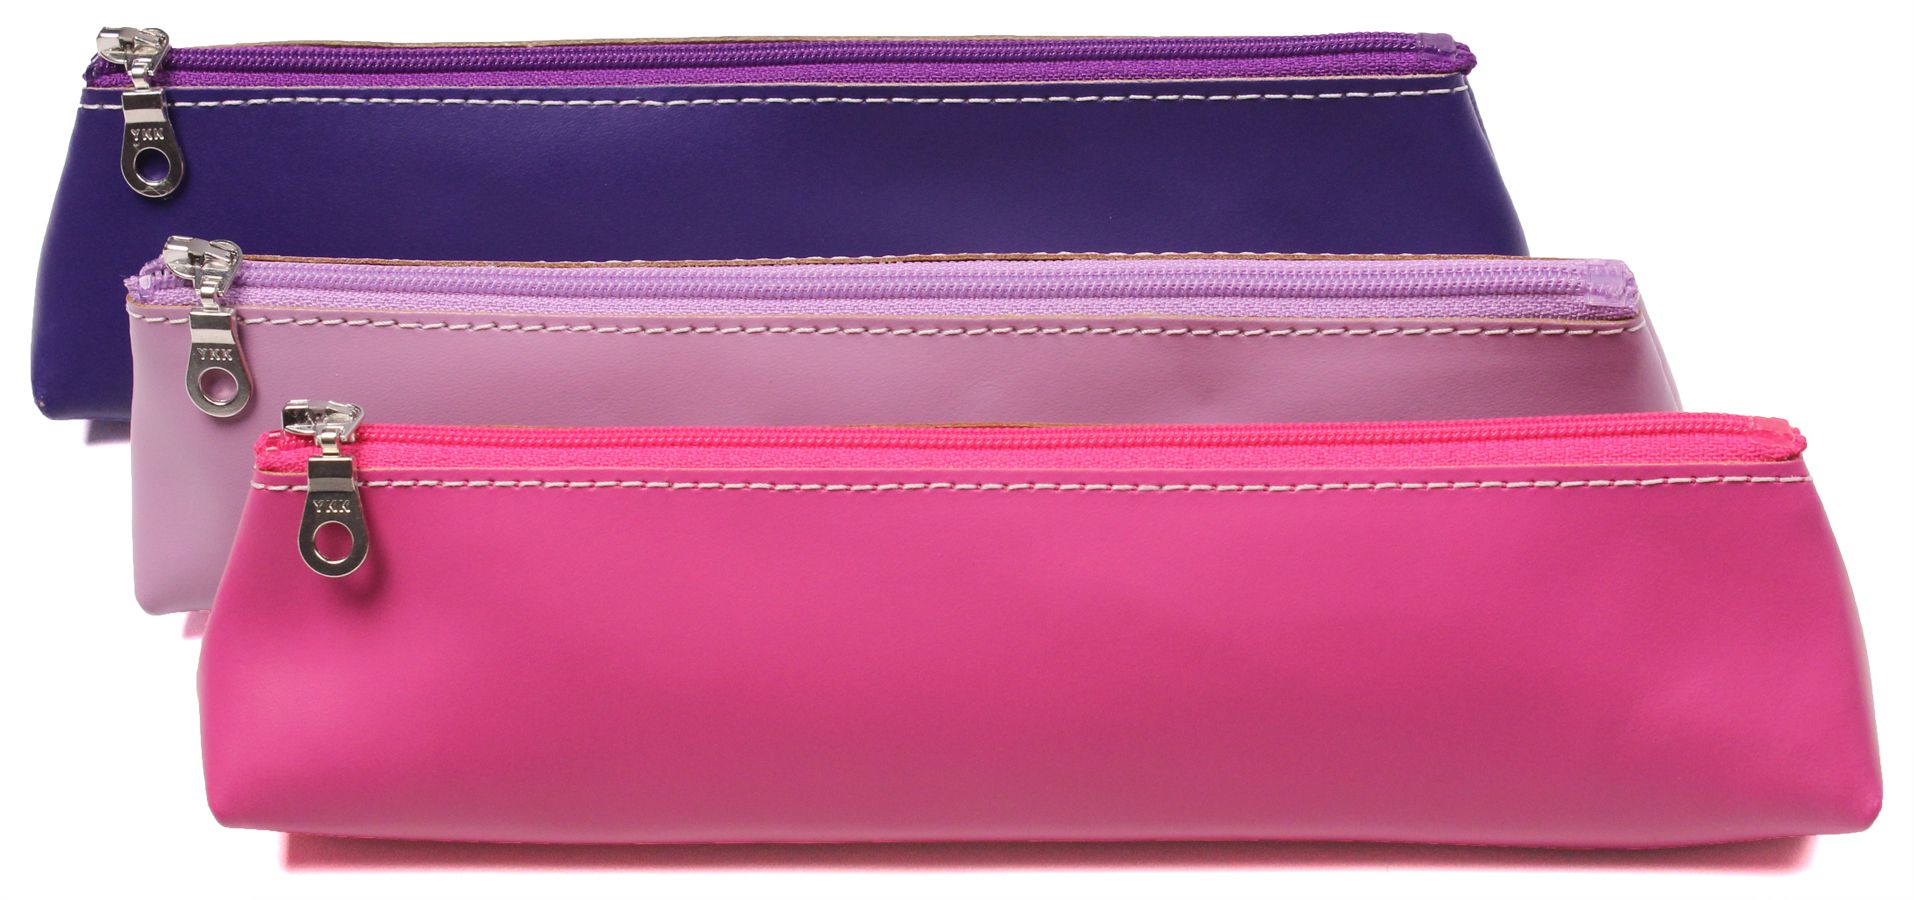 Medium Leather Pencil Case At Undercover Online Colourful